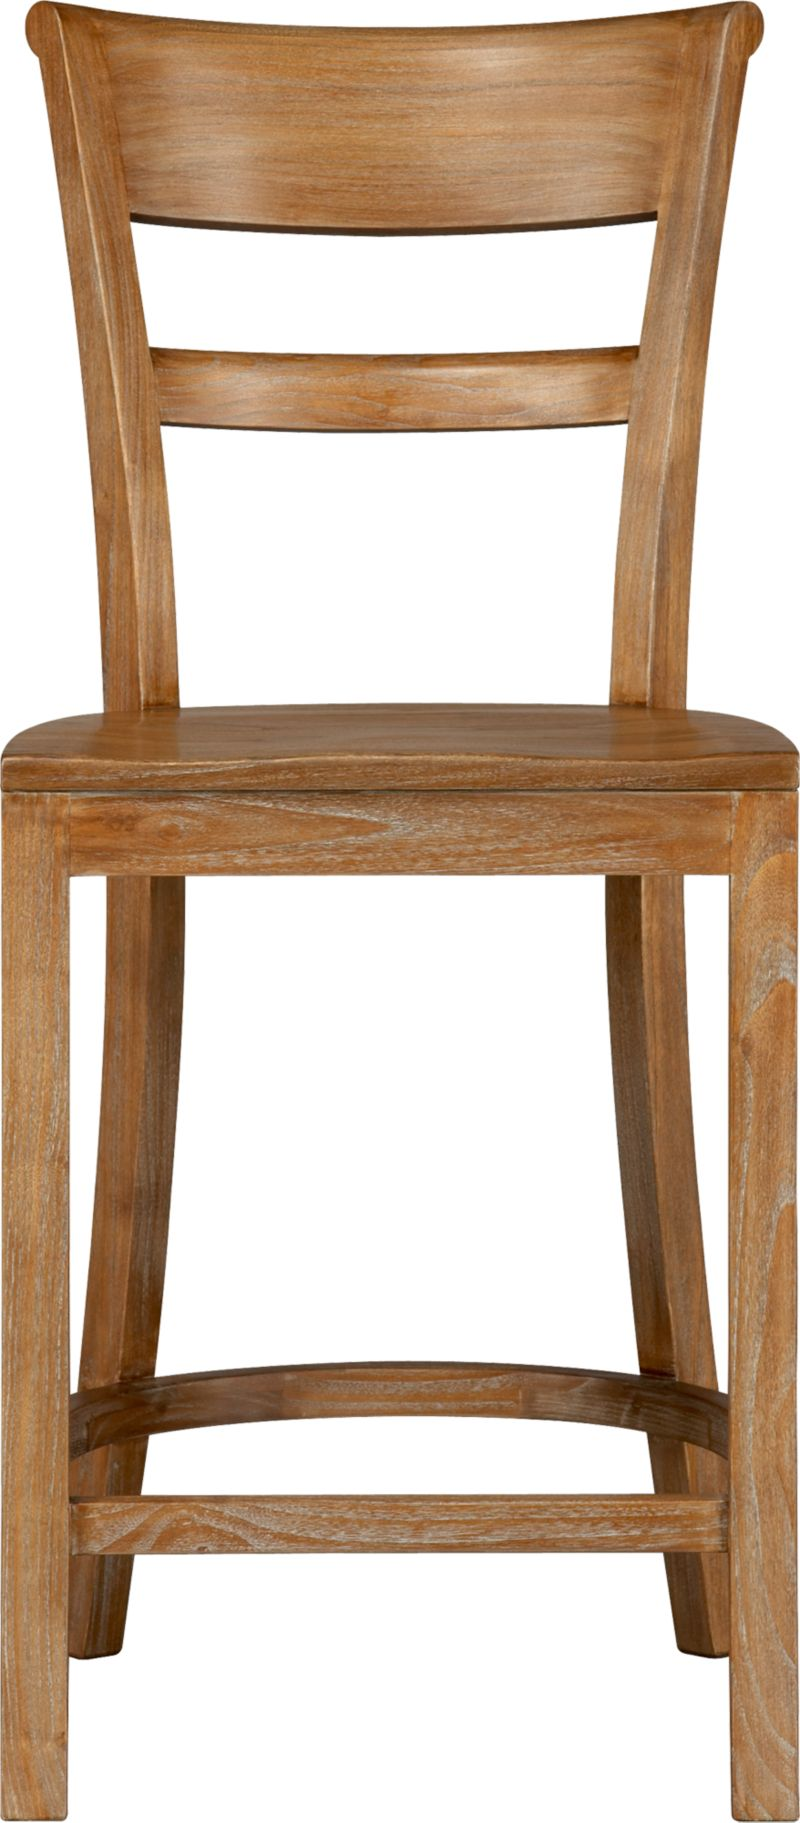 """Solid tropical sungkai wood seating pulls up to counter with ease and elegance. Barstool has graceful rolled back and comfortable contours to the seat. A soft-sheen lacquer adds a finishing detail.<br /><br /><NEWTAG/><ul><li>Solid tropical sungkai wood</li><li>Grey wash, clear protective lacquer finish</li><li>Contoured seat</li><li>24""""H seat sized for counters</li></ul>"""